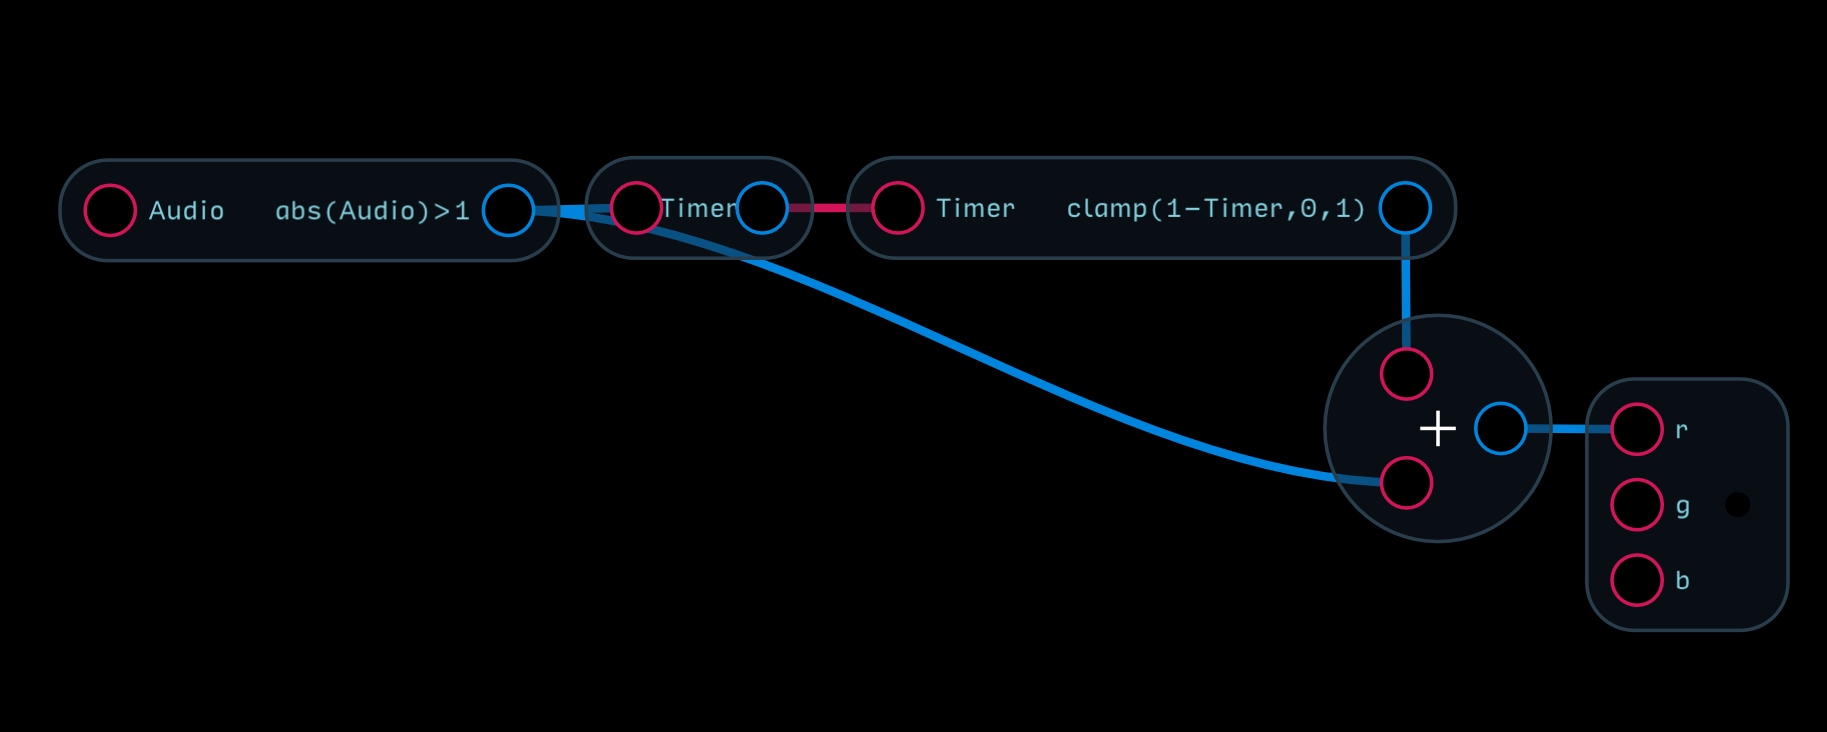 Nodes Reference Audulus Sound Operated Flip Flop In The Above Example When An Overloaded Audio Signal Is Detected By Abs Audio1 It Triggers Timer Node To Restart From 0